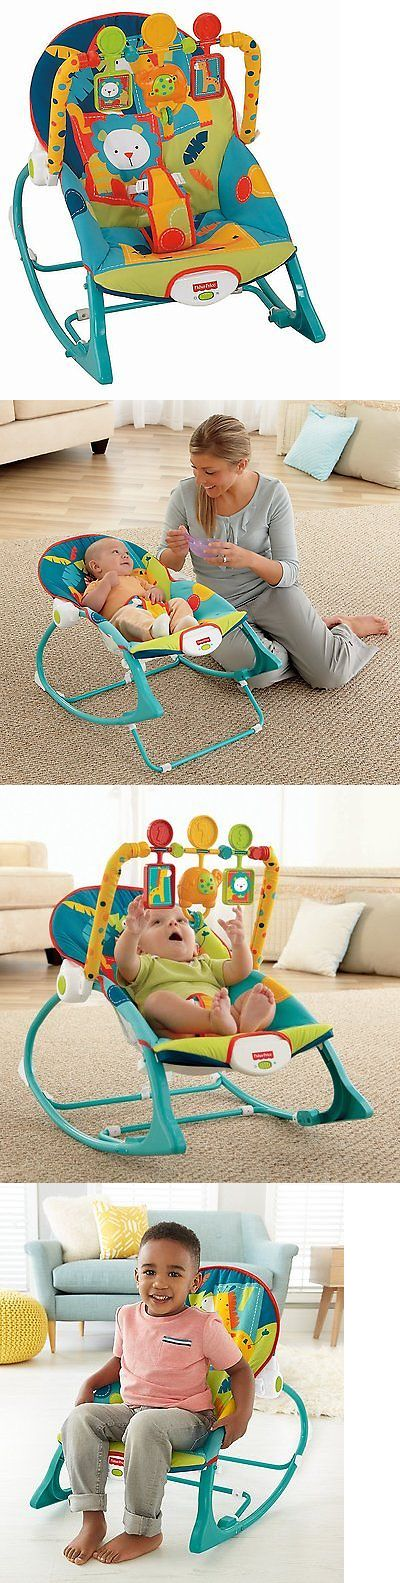 Baby: Baby Bouncer Seat Newborn Infant Toddler Musical Vibrating Rocker Chair Gift New -> BUY IT NOW ONLY: $37.5 on eBay!